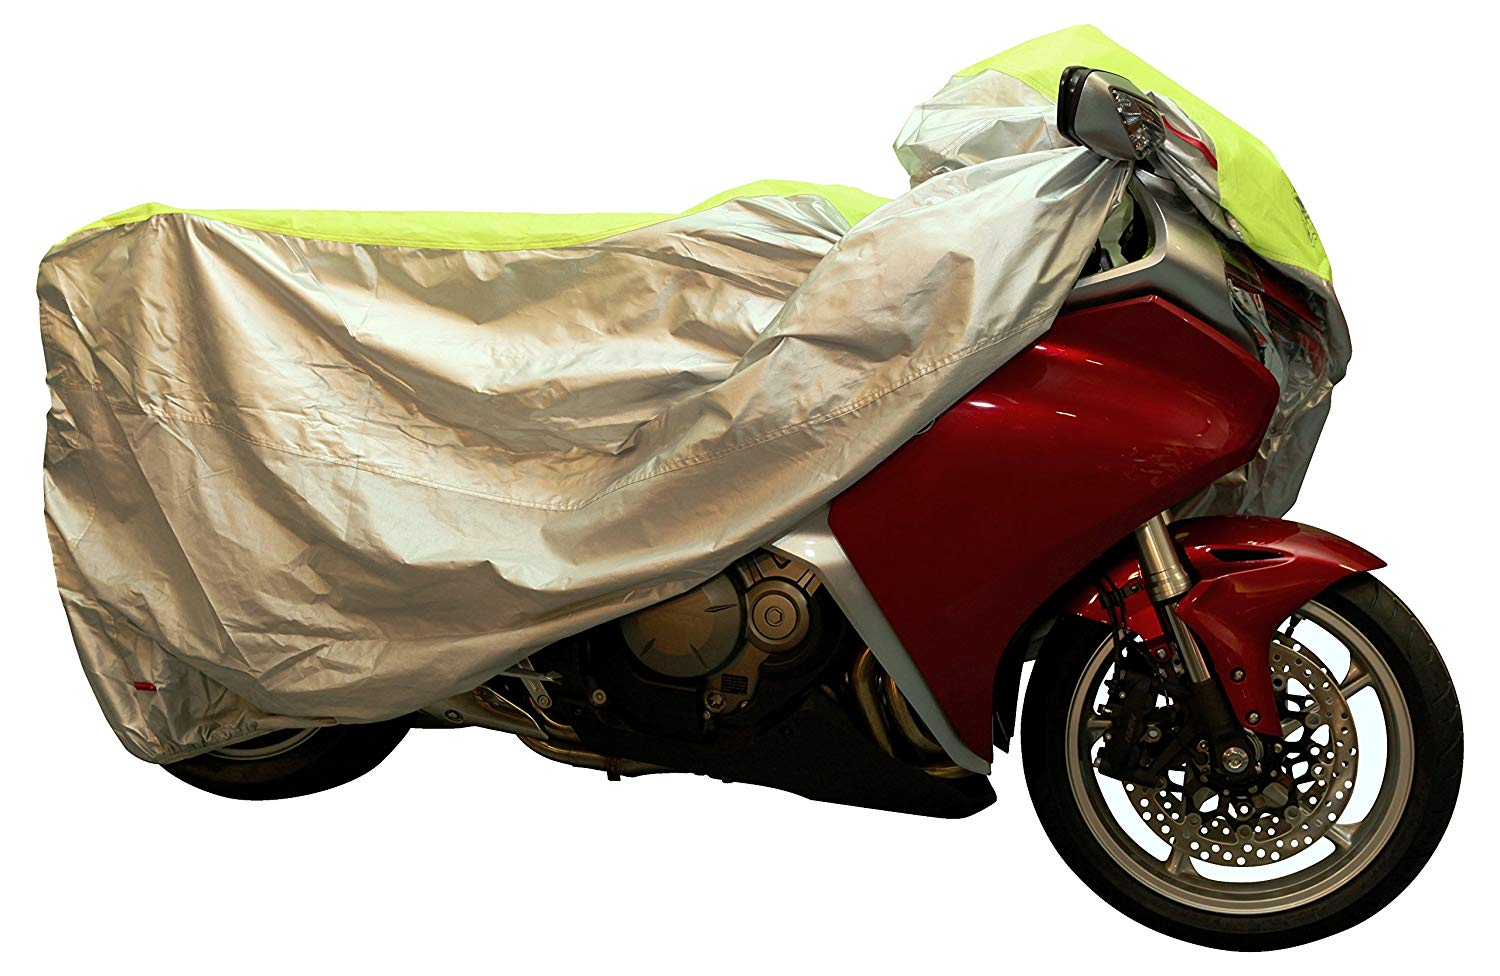 Gear Gremlin Classic Cover, Bike Cover, Gear Gremlin - Averys Motorcycles